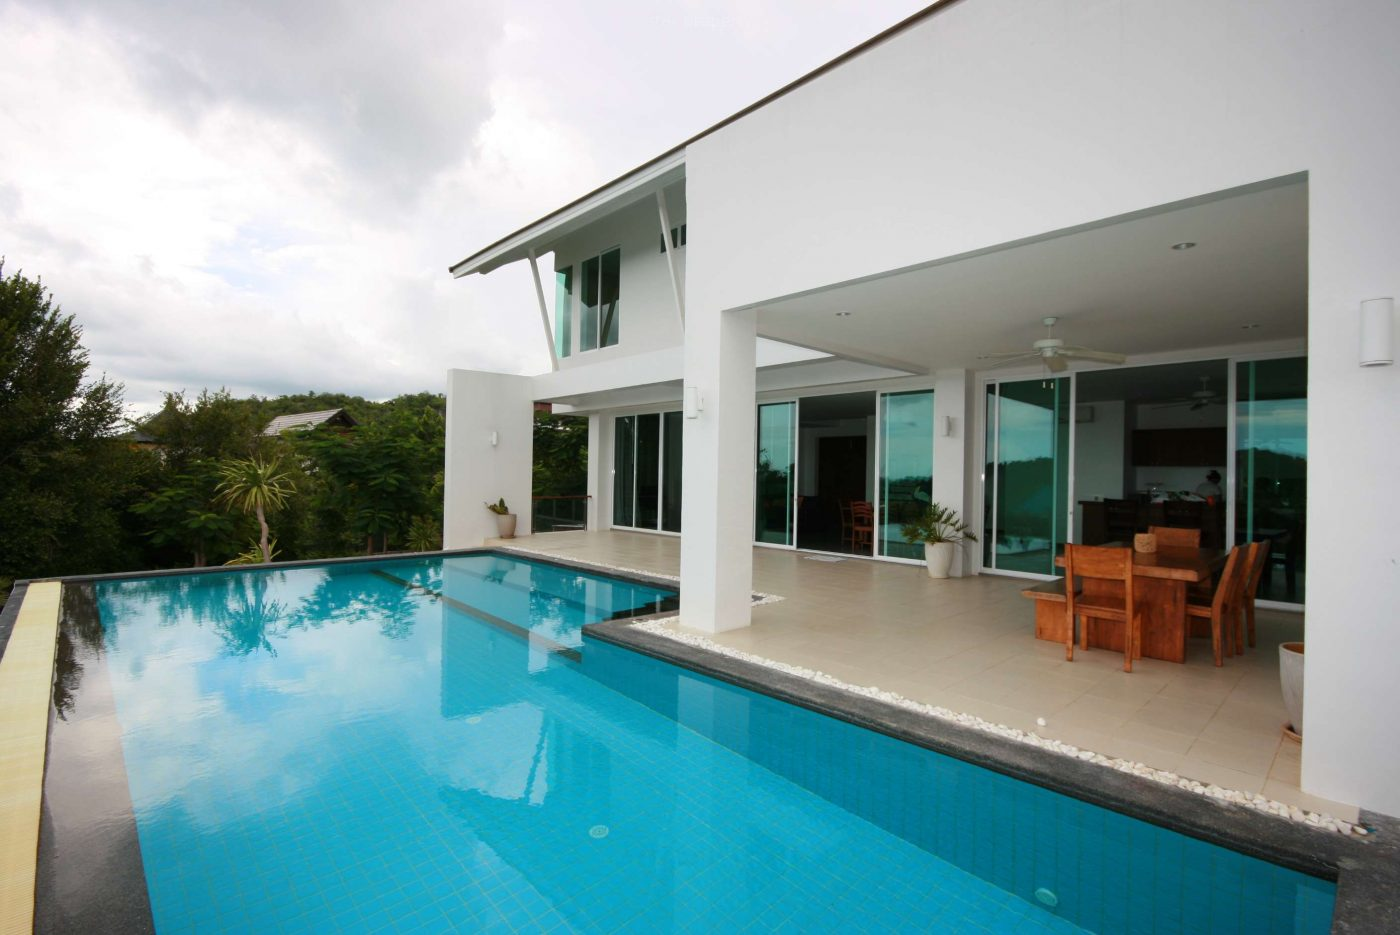 Modern Pool Villa with Sea View for Rent at Star Property Hua Hin Co., Ltd 6/5